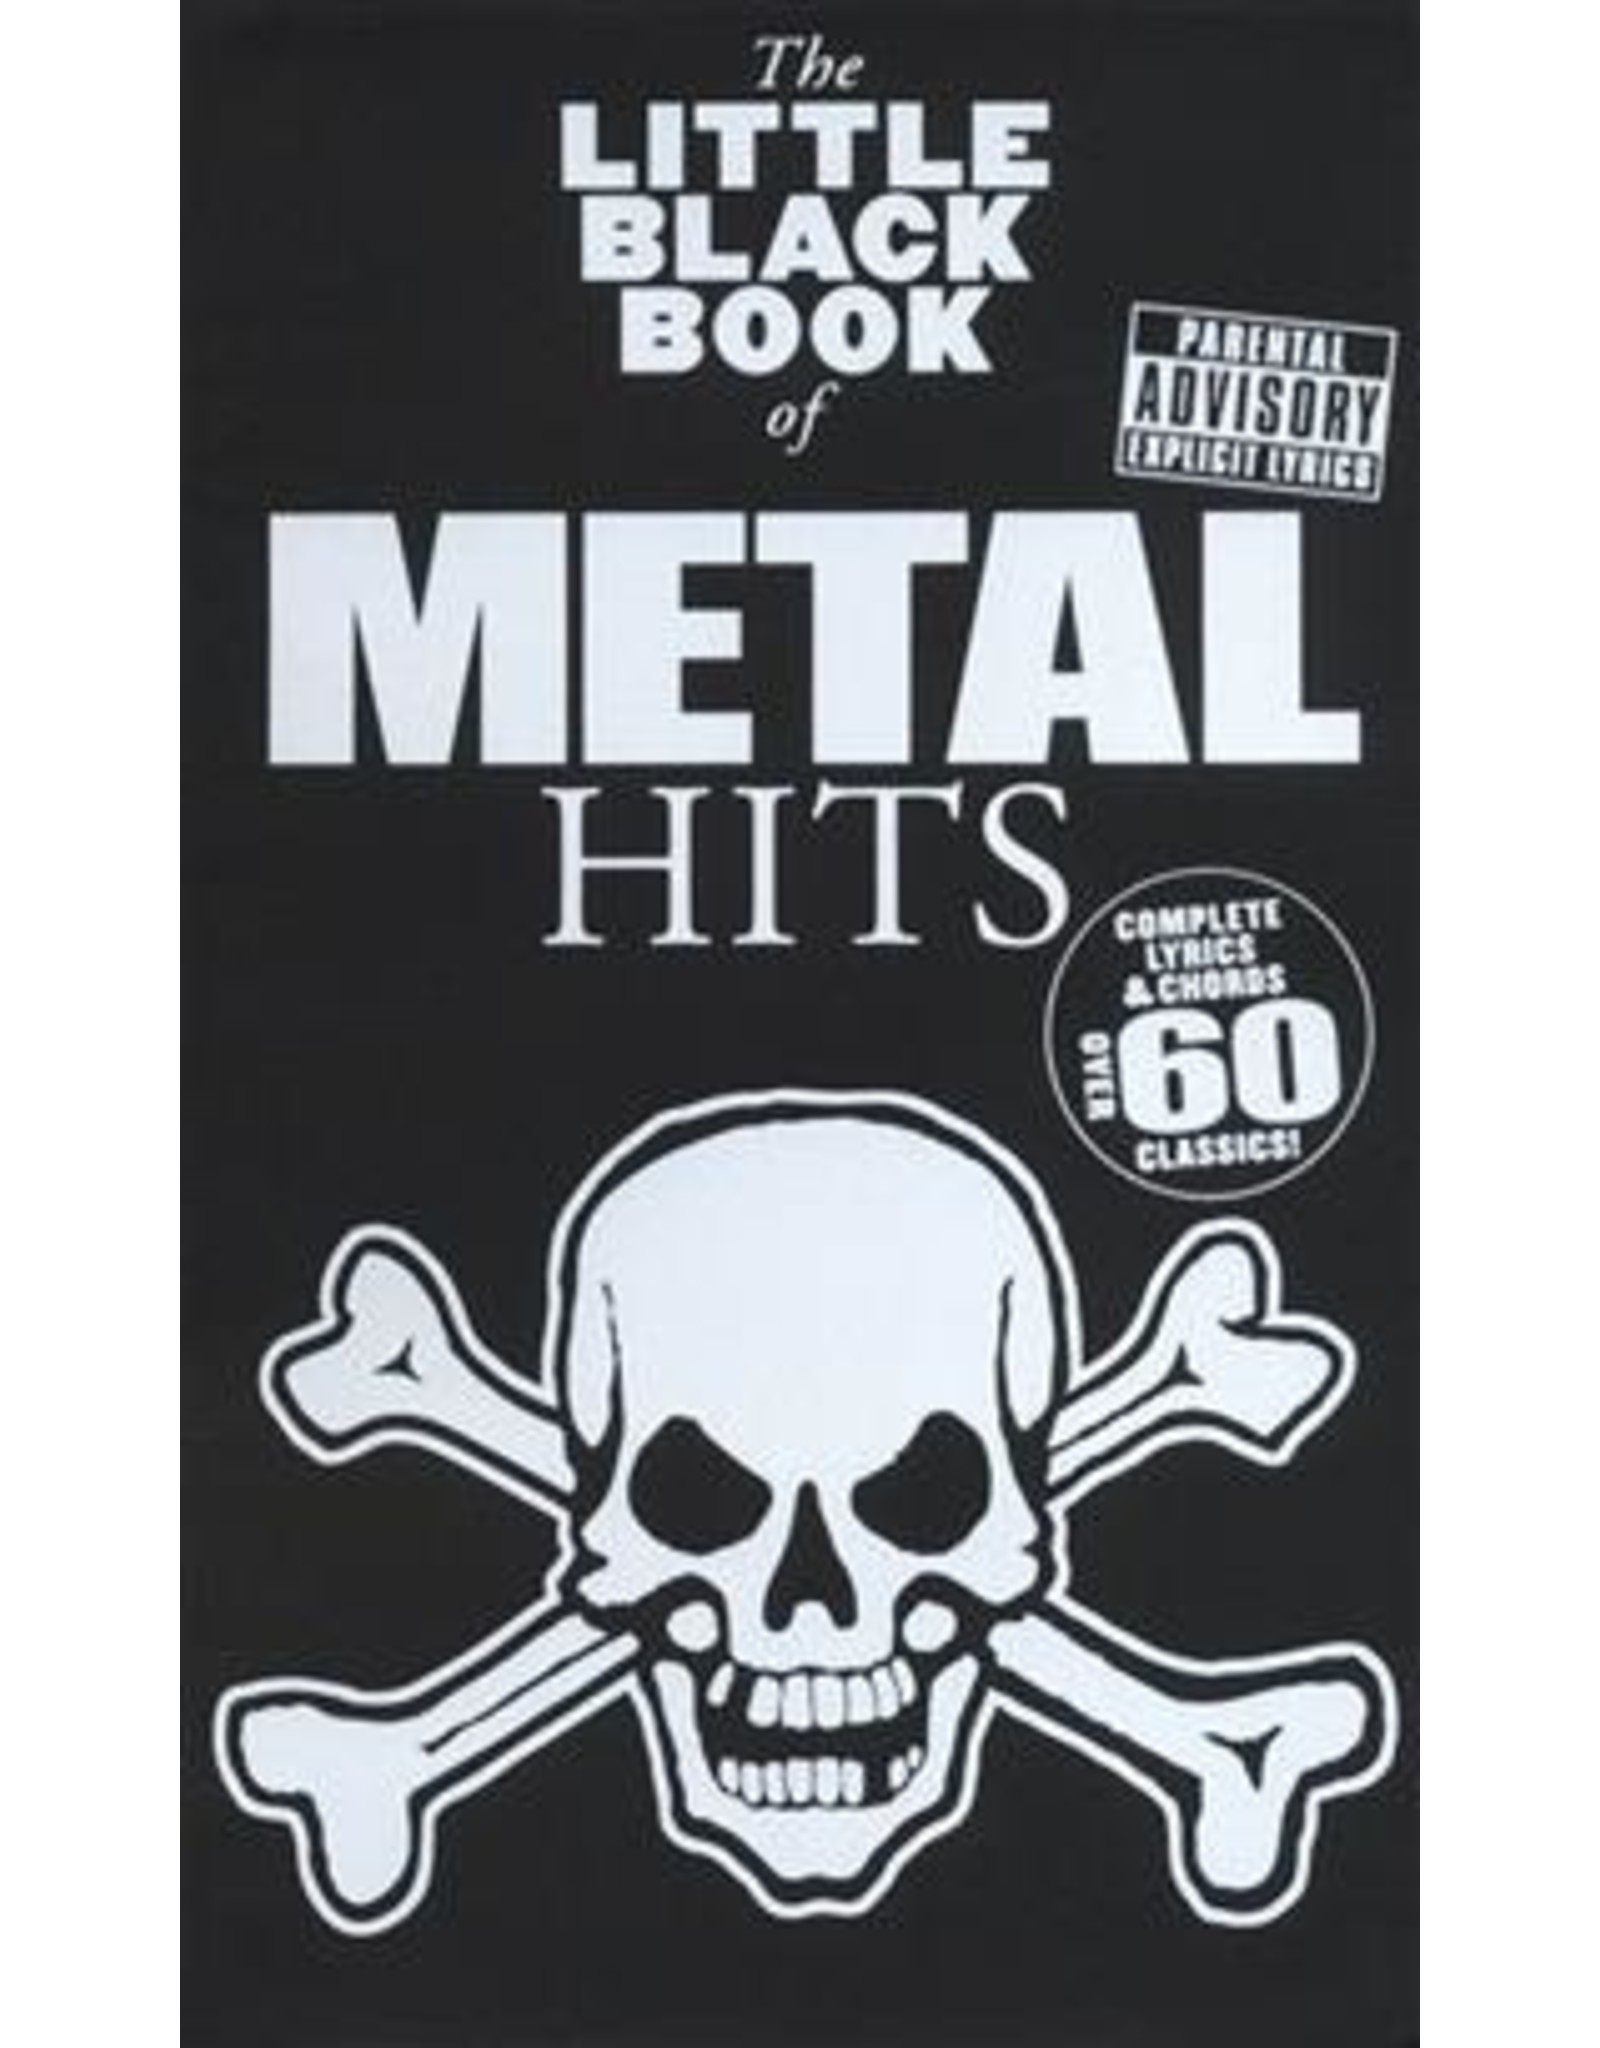 The Little Black Songbook: Metal